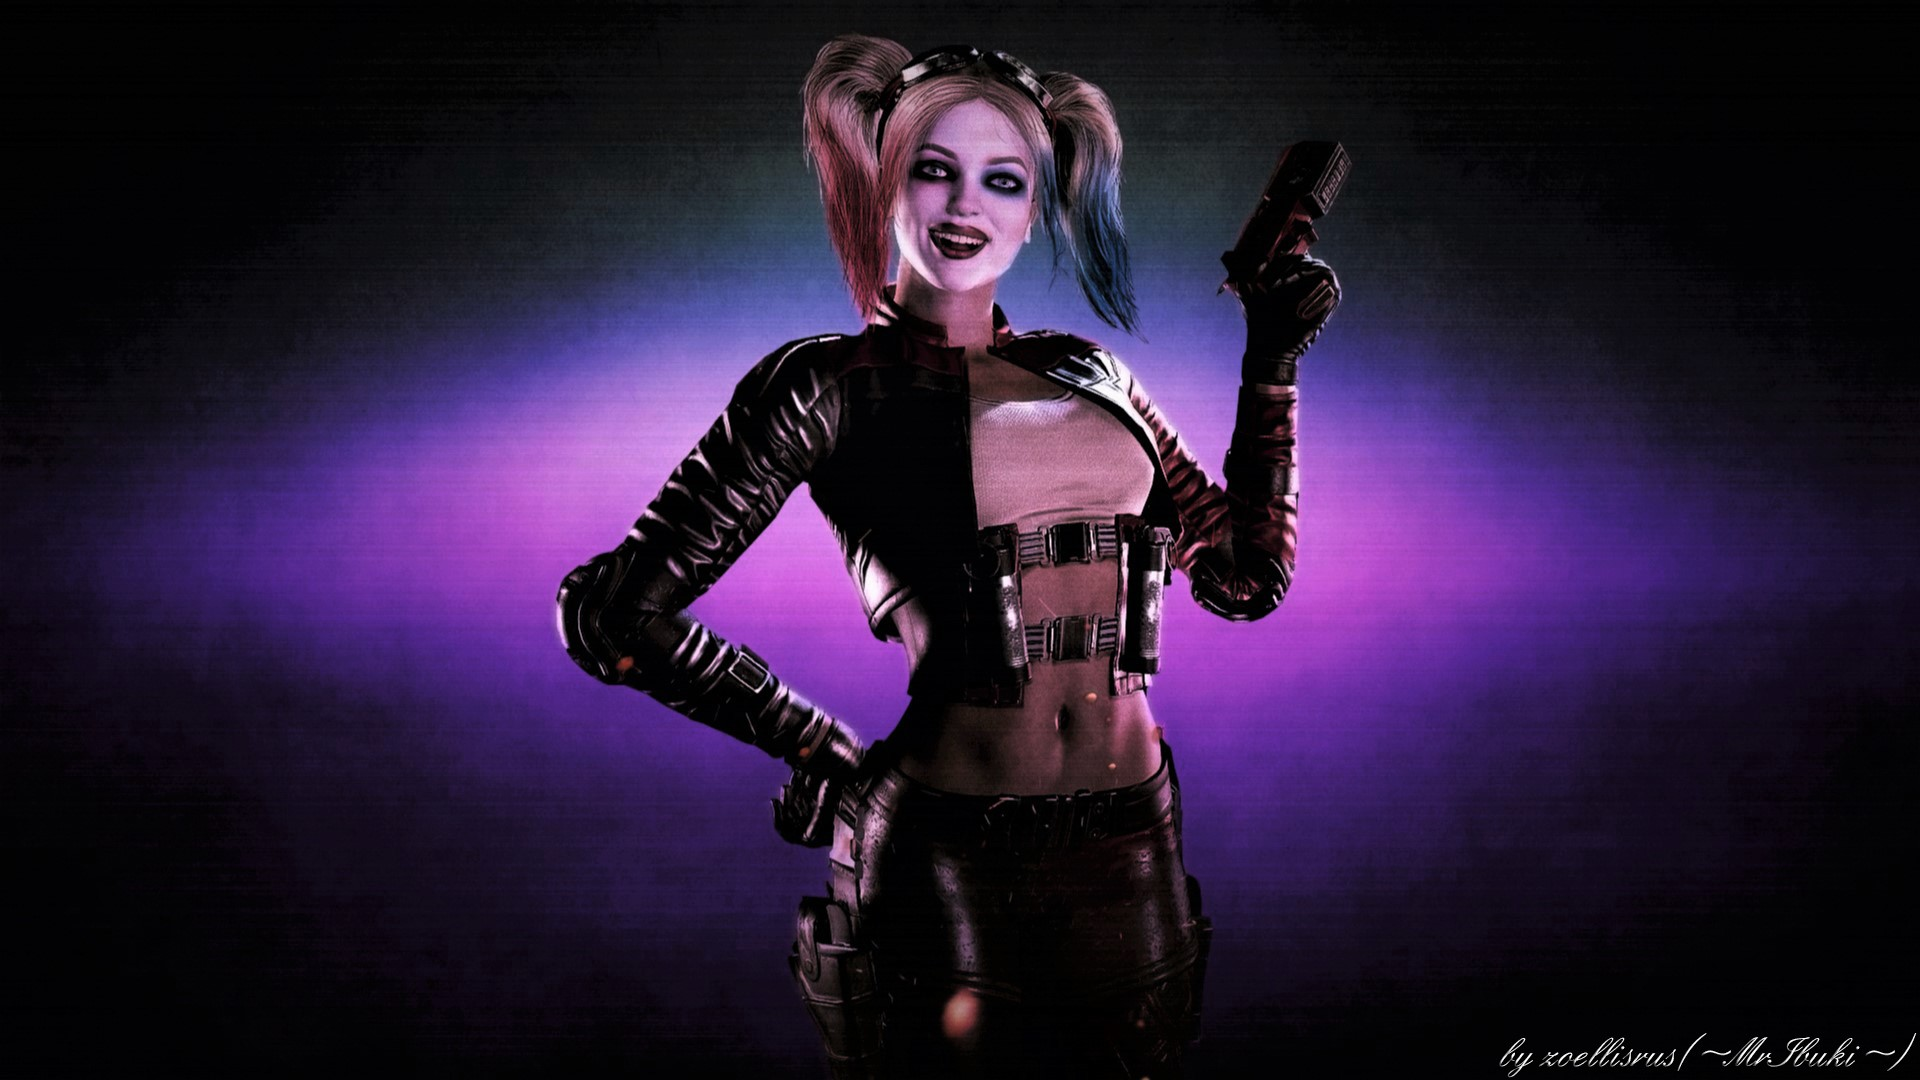 Harley Quinn Injustice 2 Wallpaper: Harley Quinn Simple Wallpaper By Zoellisrus